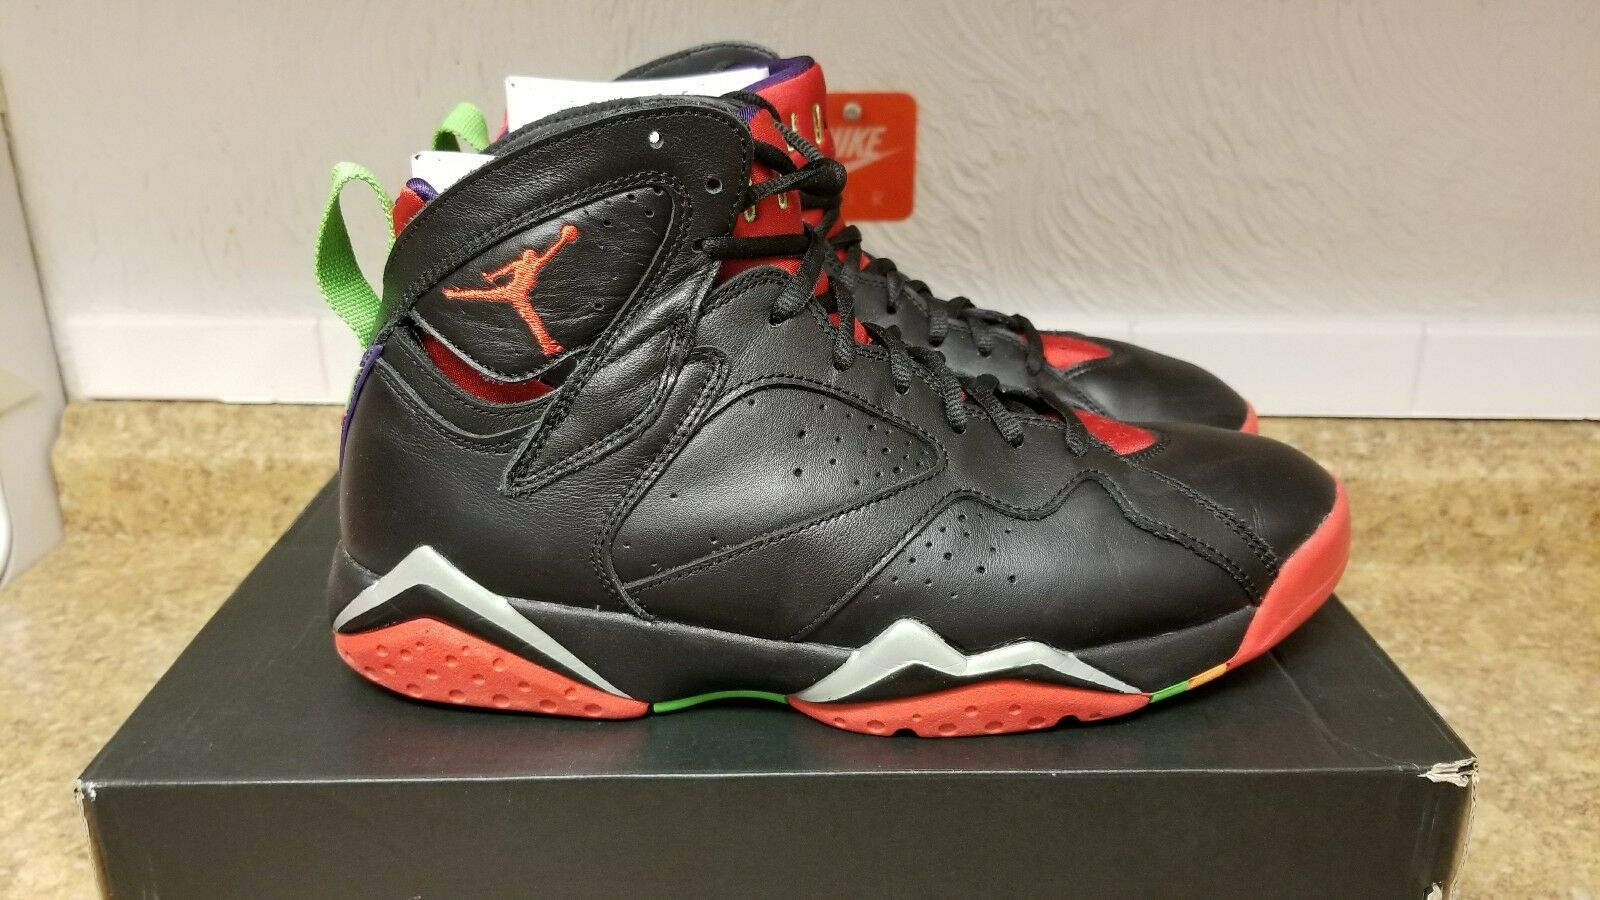 Nike Air Jordan VII 7 Retro Black/Red-Green Marvin The Martian 304775-029 Price reduction Special limited time